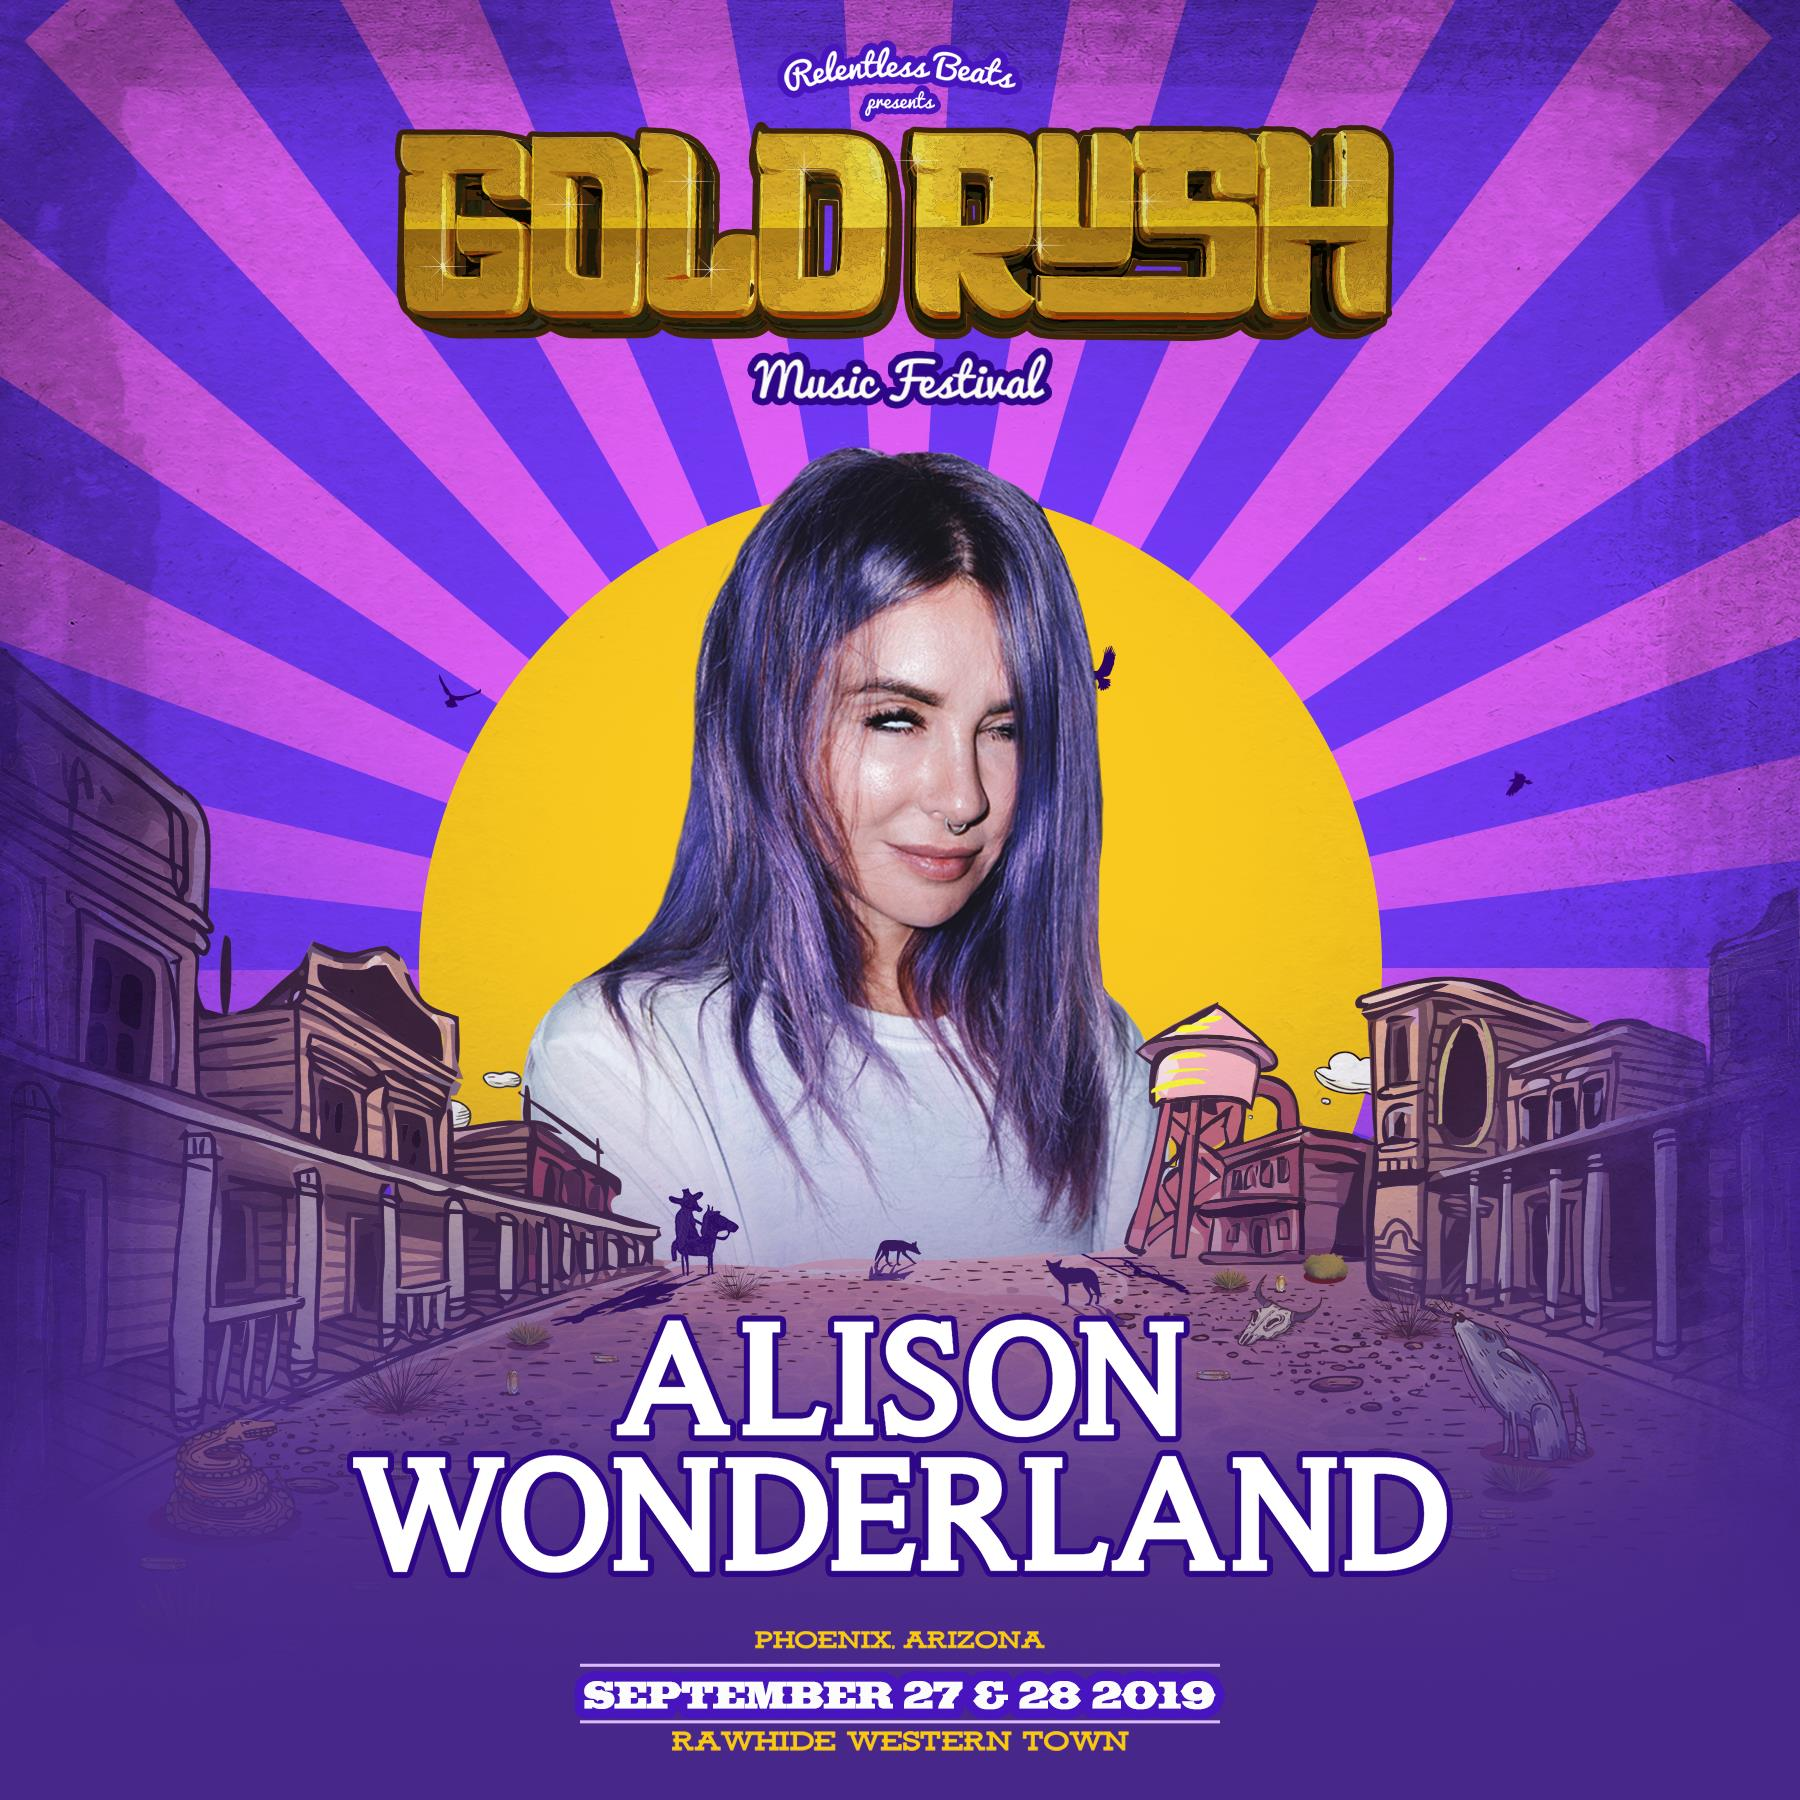 Buy Tickets to Goldrush 2019 in Chandler on Sep 27, 2019 - Sep 28,2019